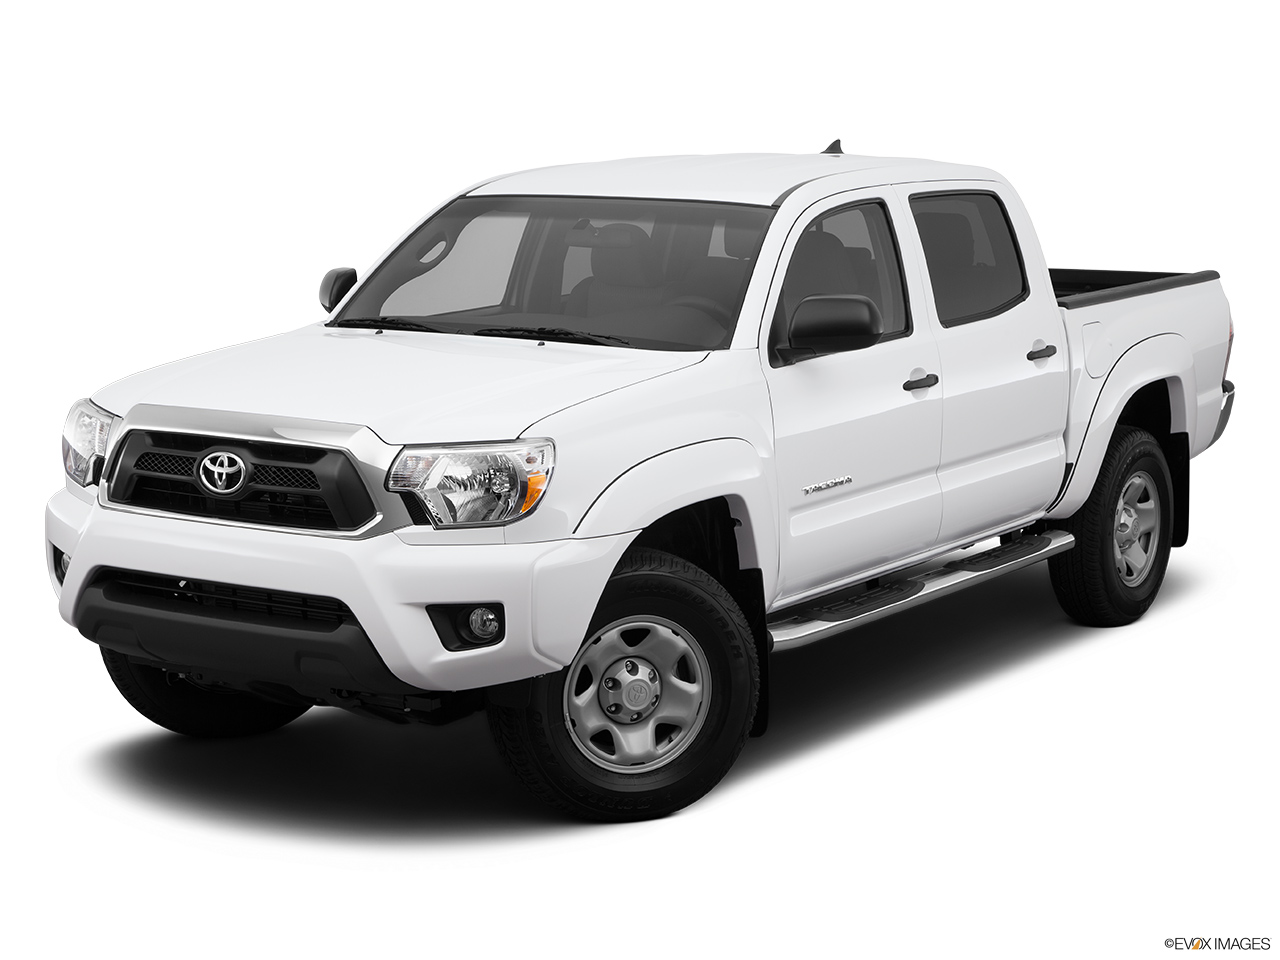 2014 toyota tacoma 4wd double cab v6 manual. Black Bedroom Furniture Sets. Home Design Ideas